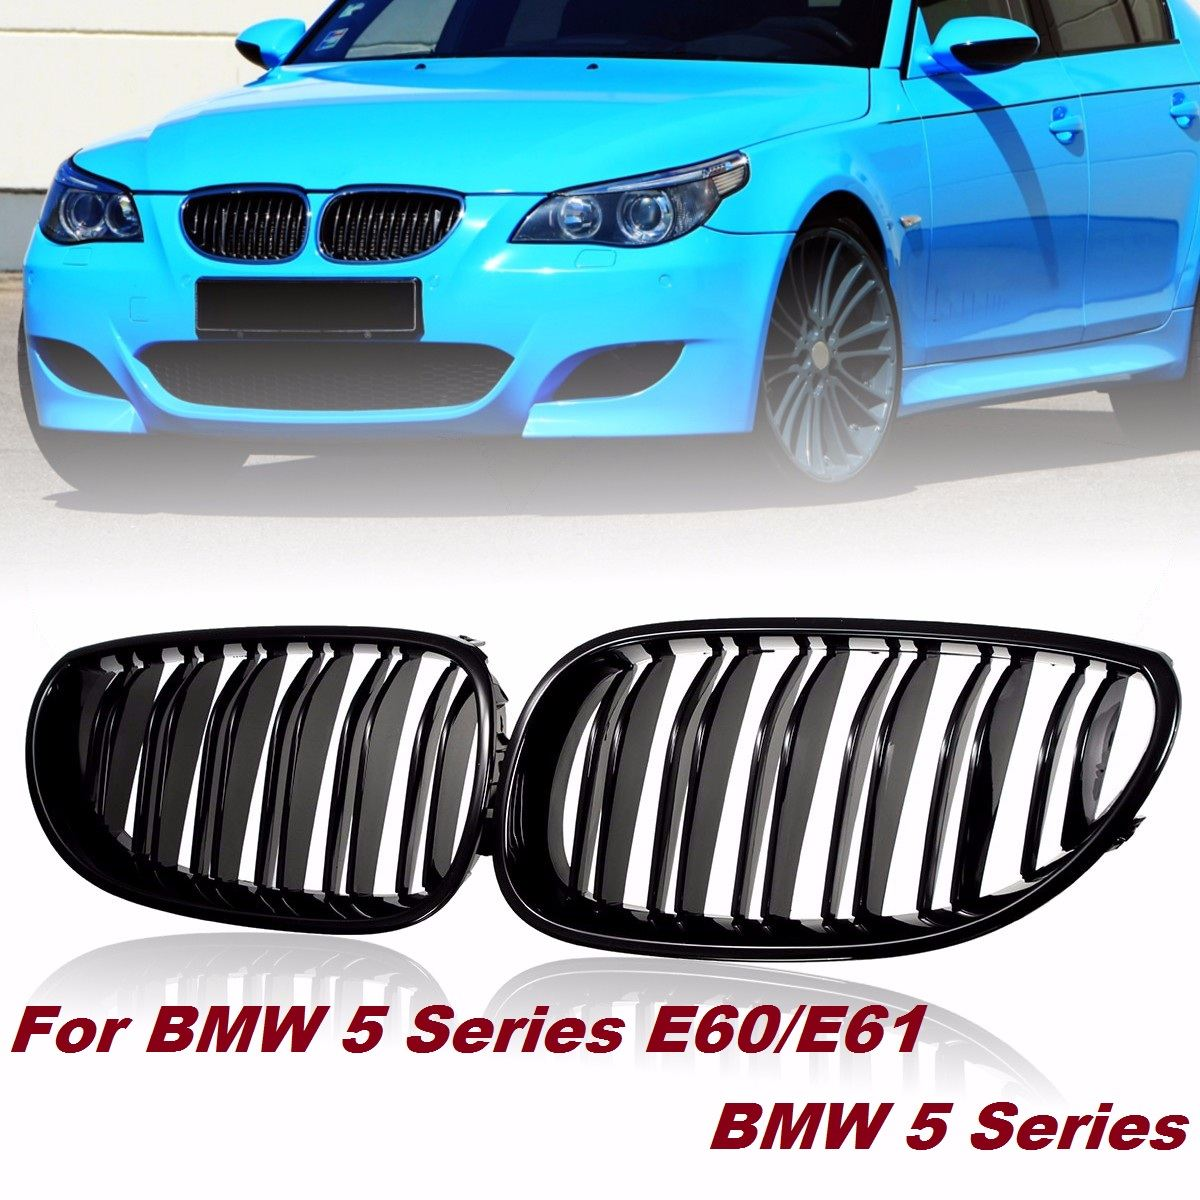 Pair Gloss/Matte Black Car Front Sport Grill Kidney Grilles Grill For BMW 5 Series M5 E60/E61 2003 2004 2005 2006 2007 2008 2009 pair gloss matt black m color 2 line front kidney grille grill double slat for bmw e90 e91 3 series 2004 2005 2006 2007